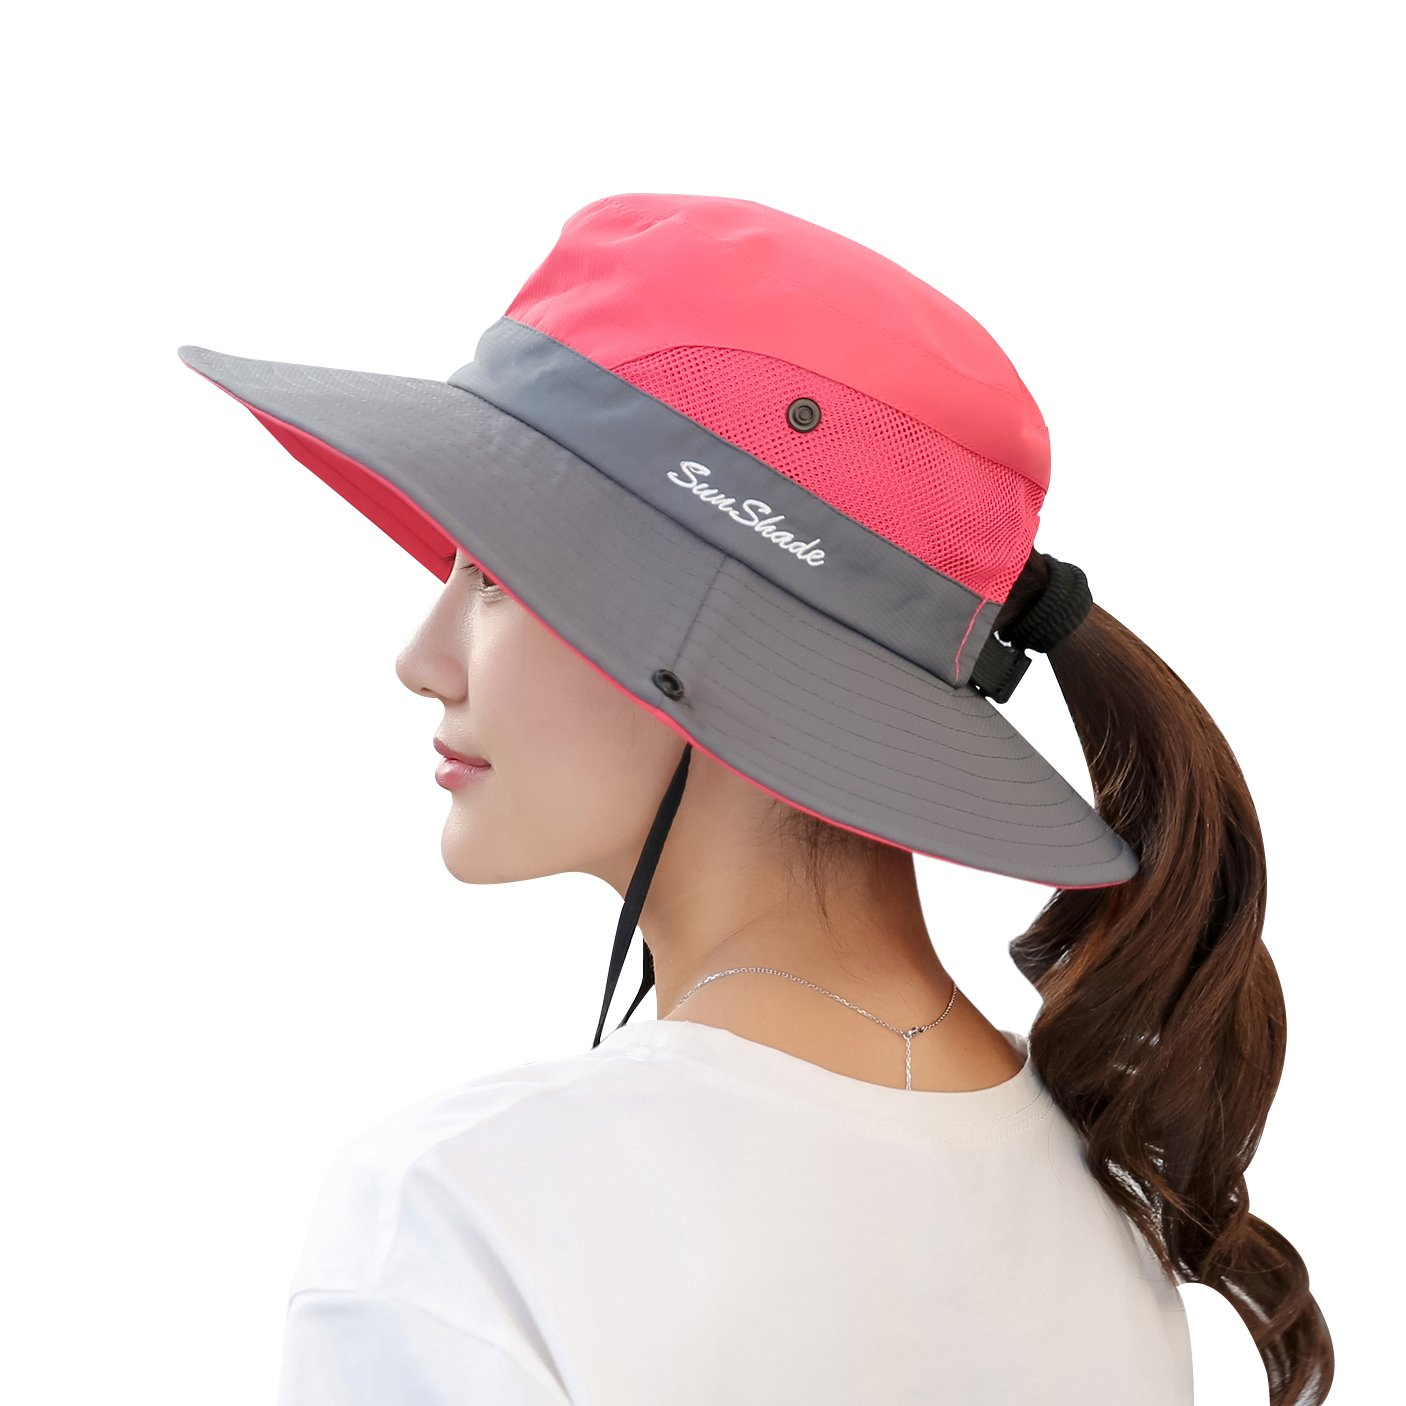 Women's Summer Sun UV Protection Hat Foldable Wide Brim Boonie Hats for Beach Safari Fishing